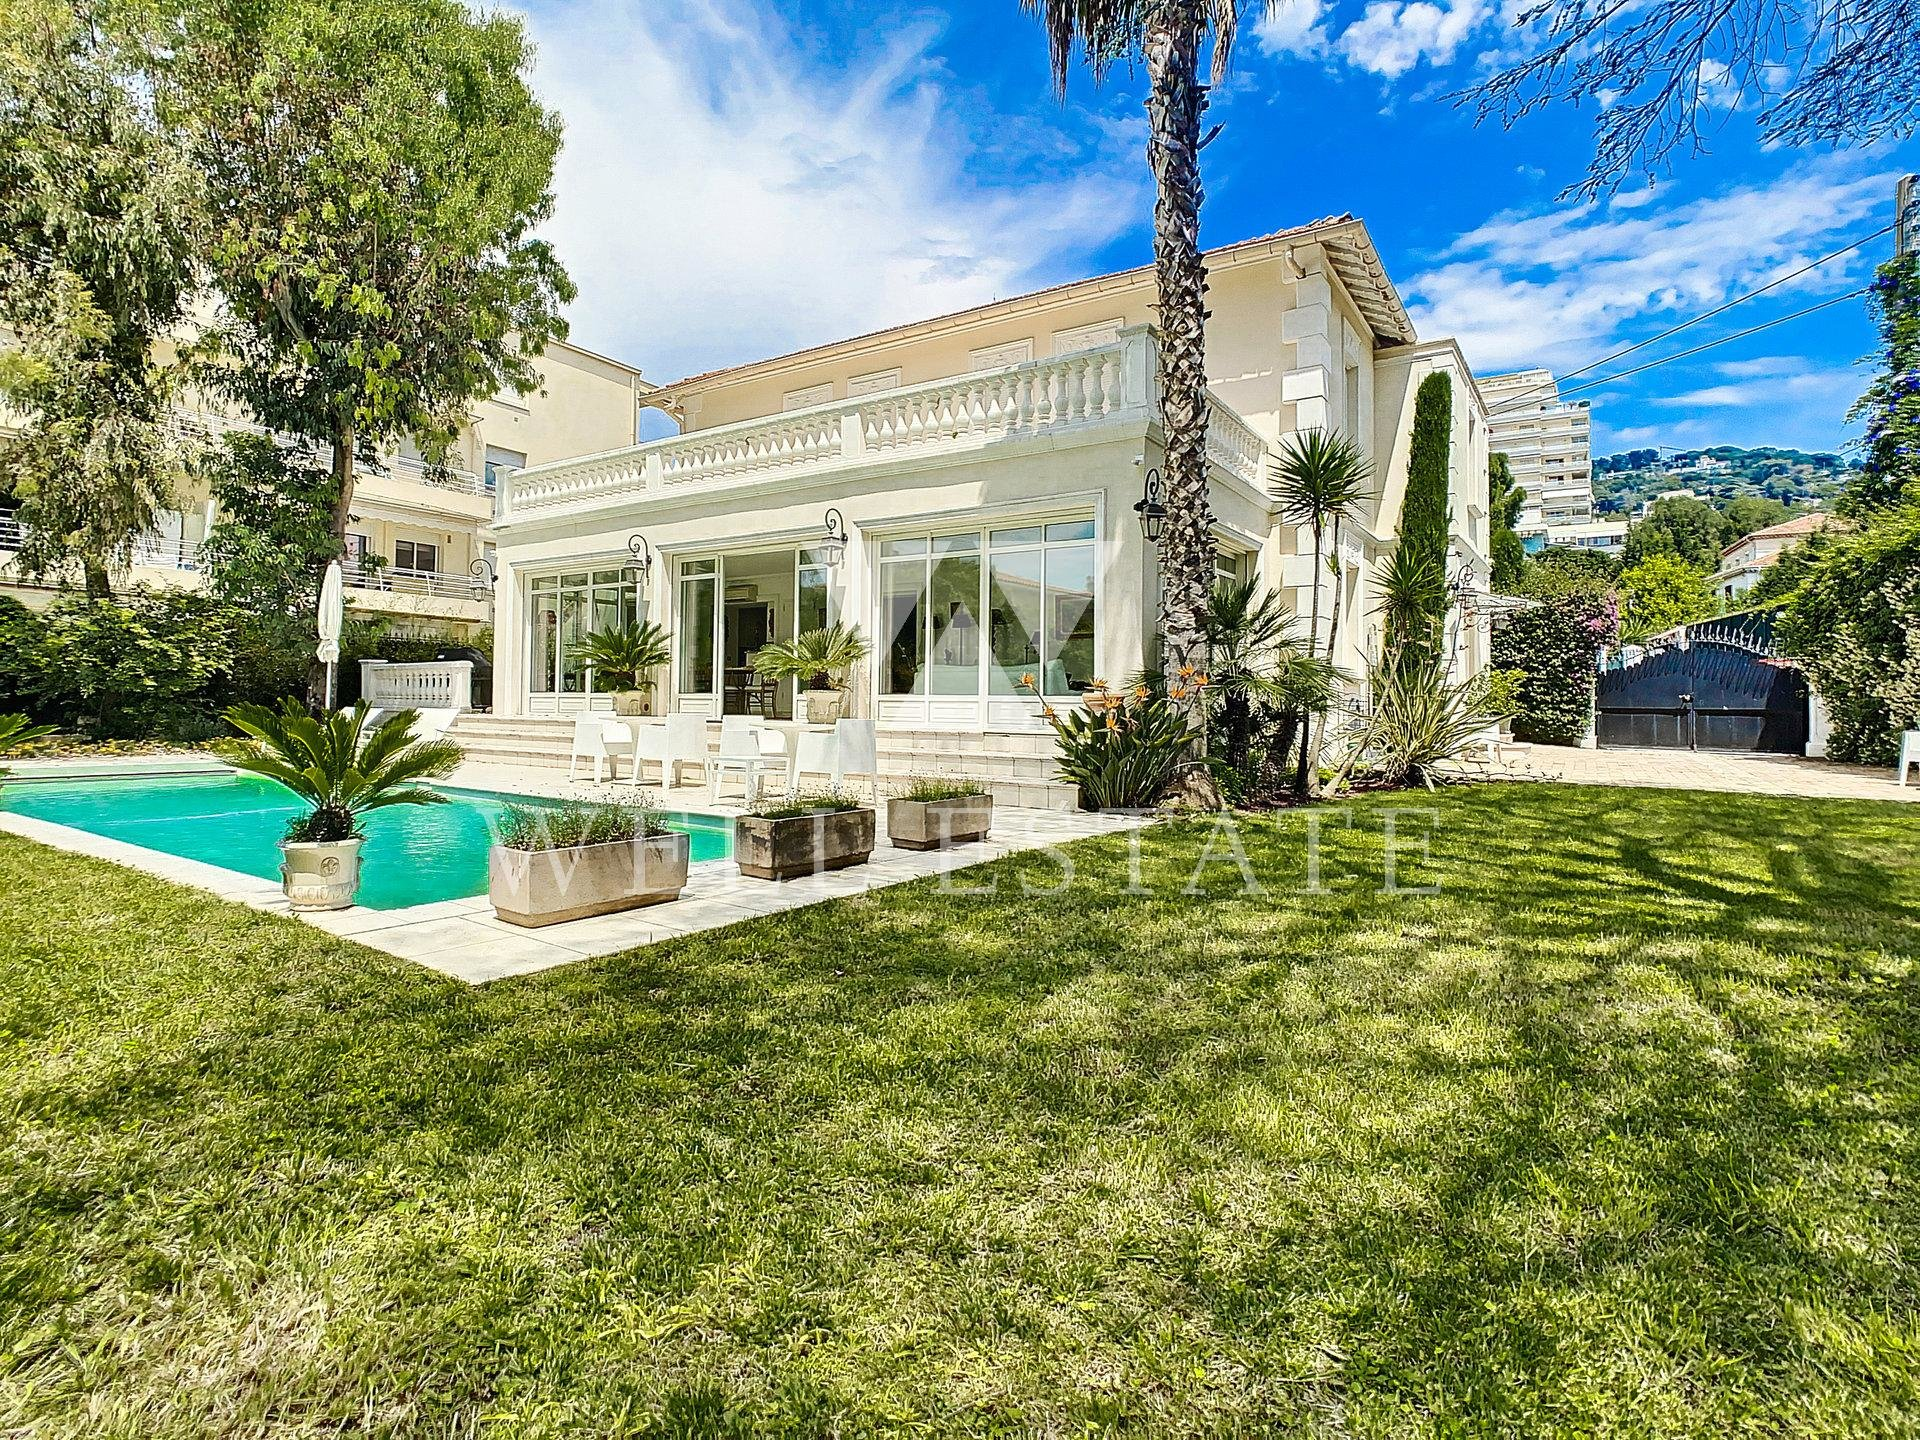 UNIQUE CENTER CANNES BOURGEOIS VILLA 300M2 5 BEDROOMS SWIMMING POOL